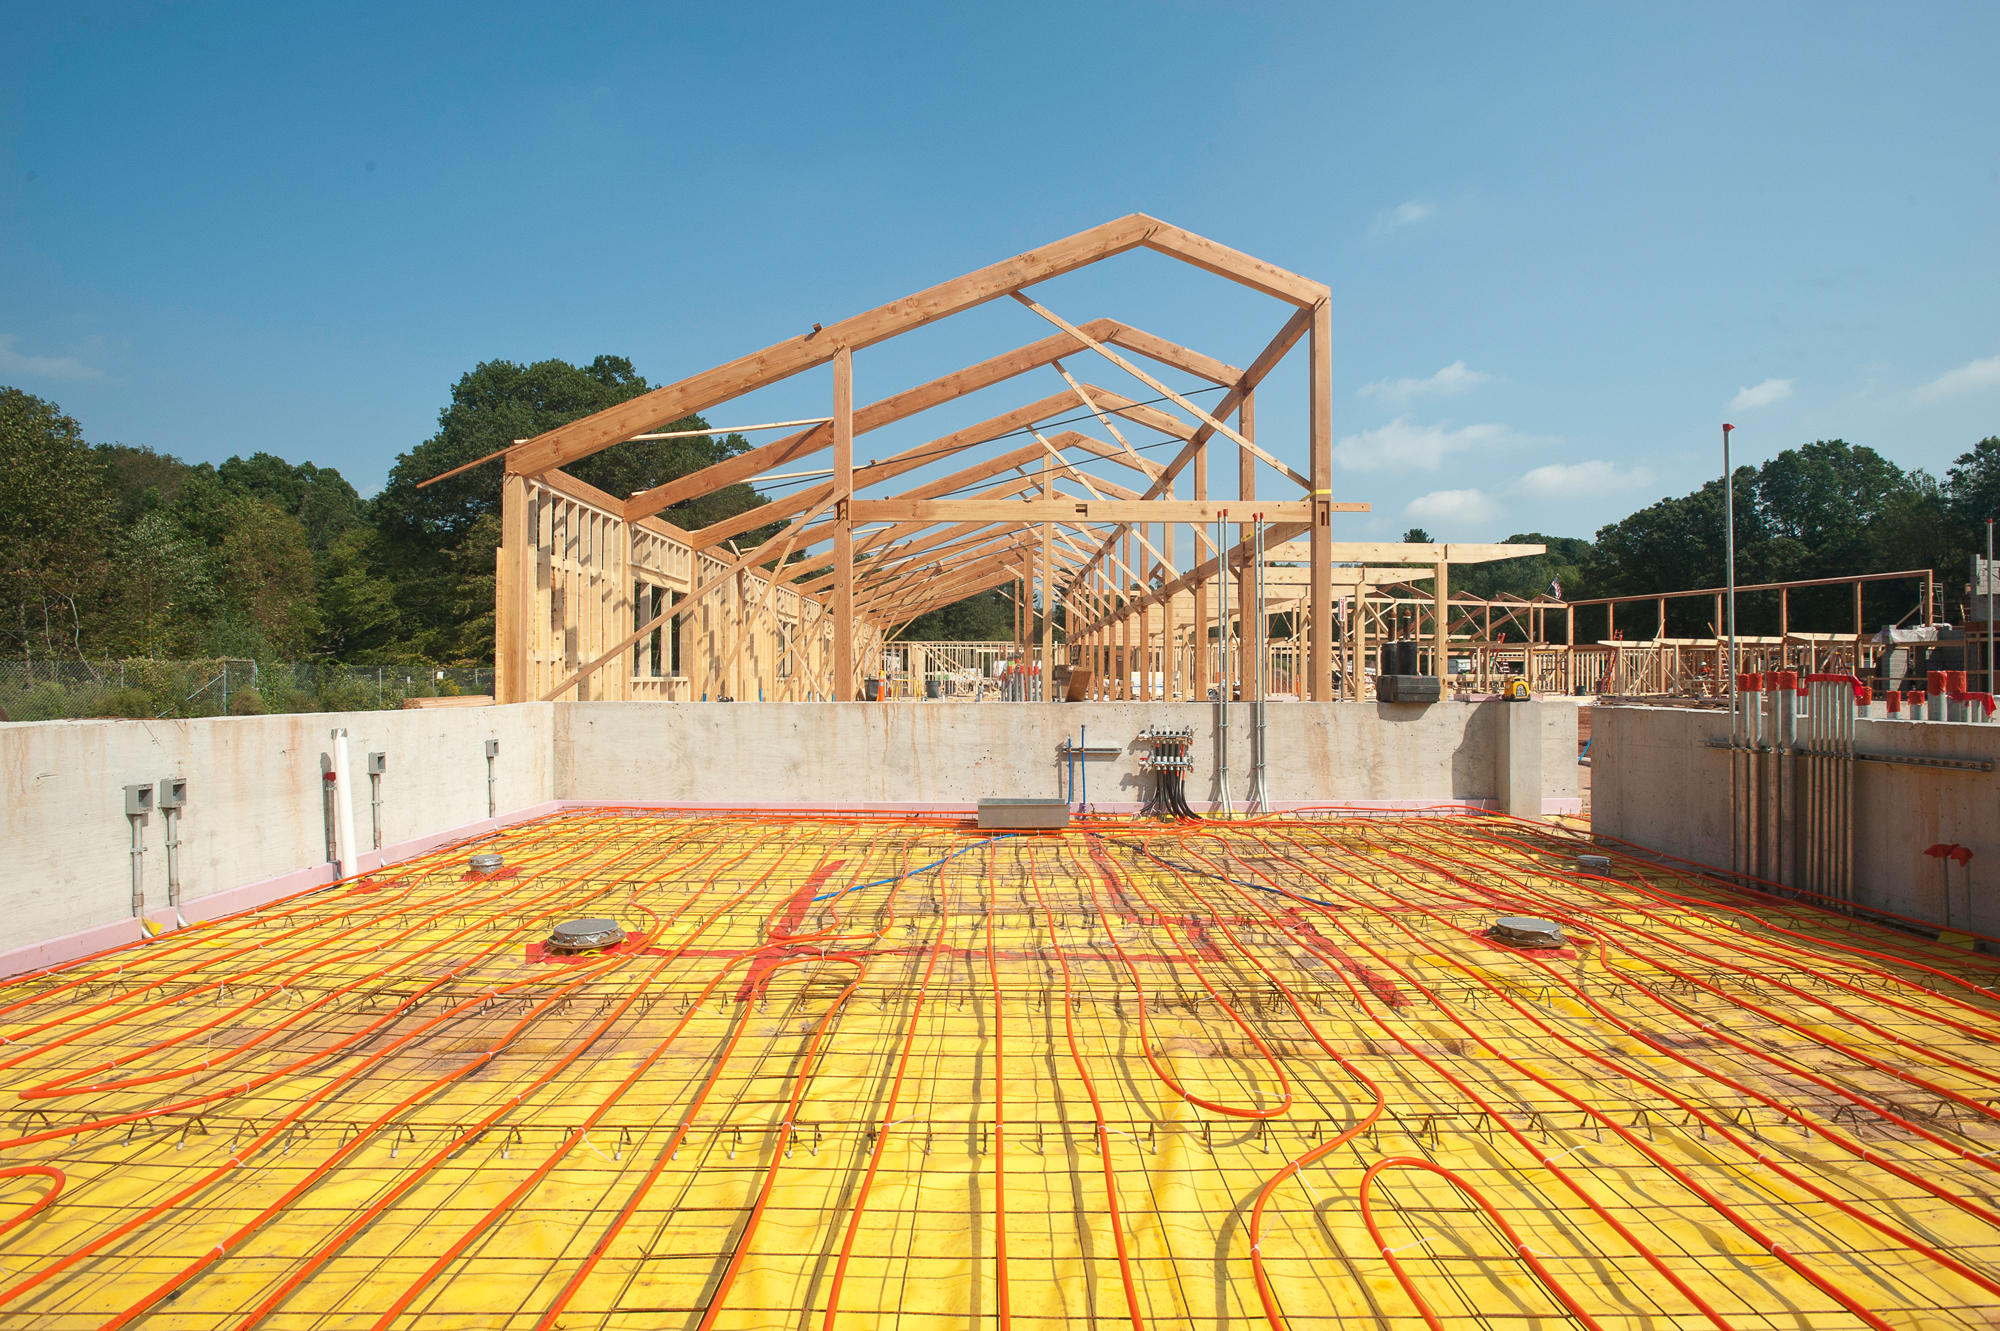 radiant heat construction and progress photo by John giammatteo of Kohler Environmental Center